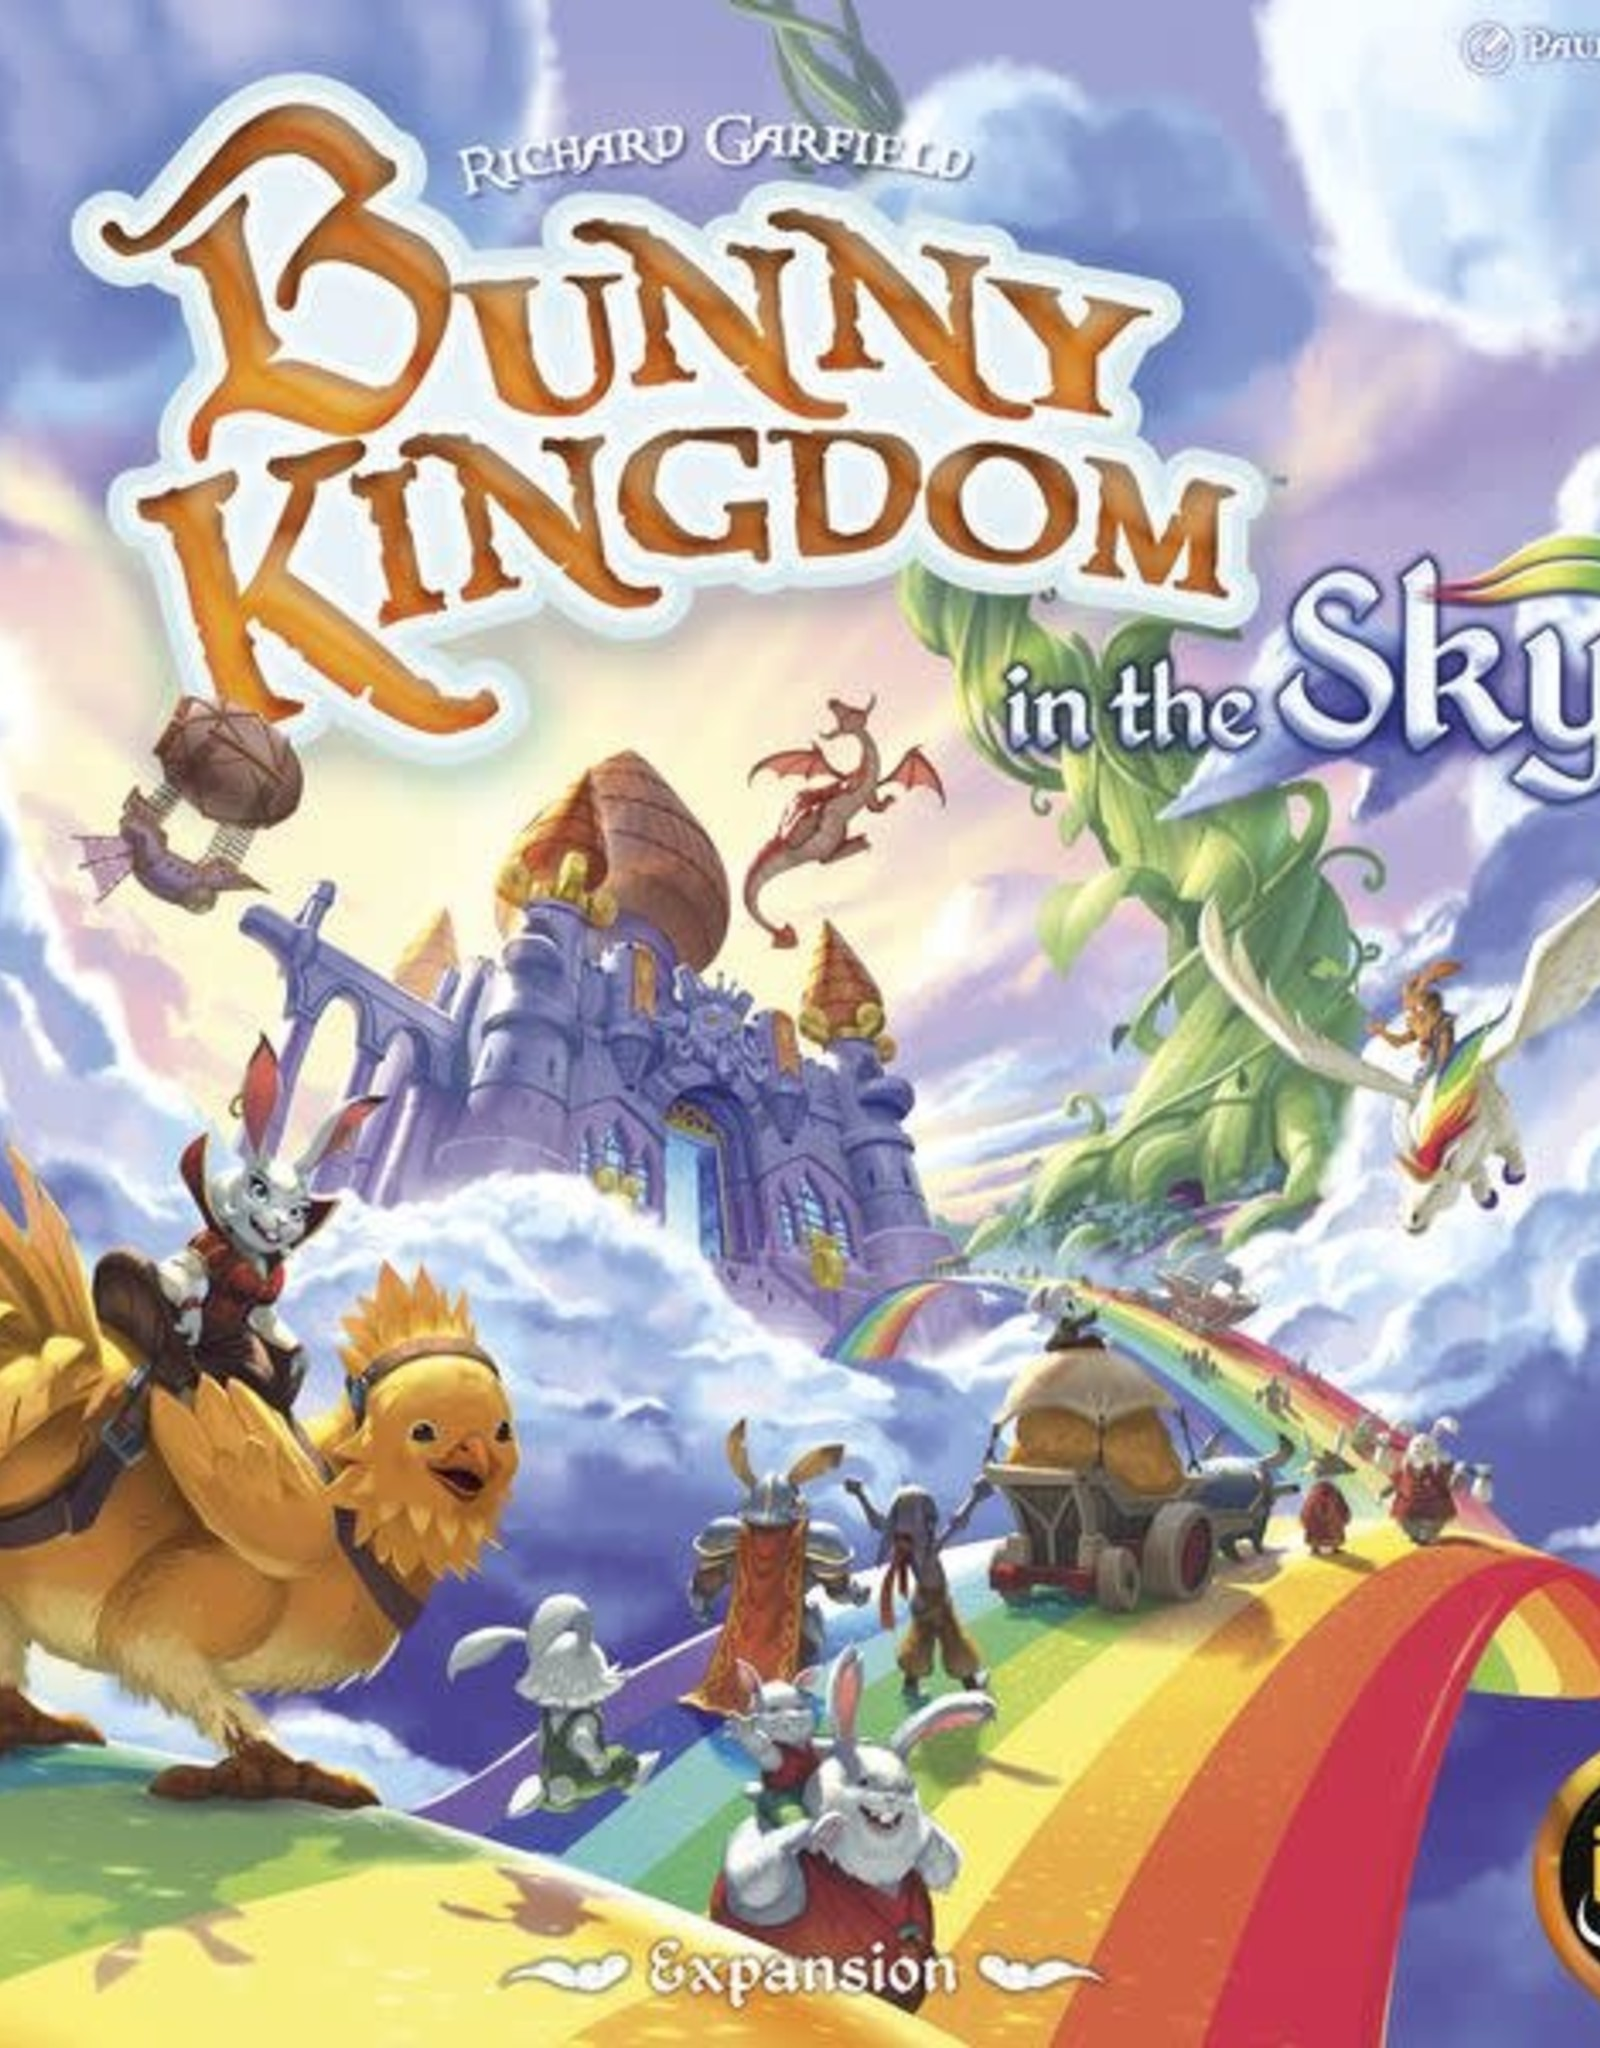 Iello Bunny Kingdom in the Sky